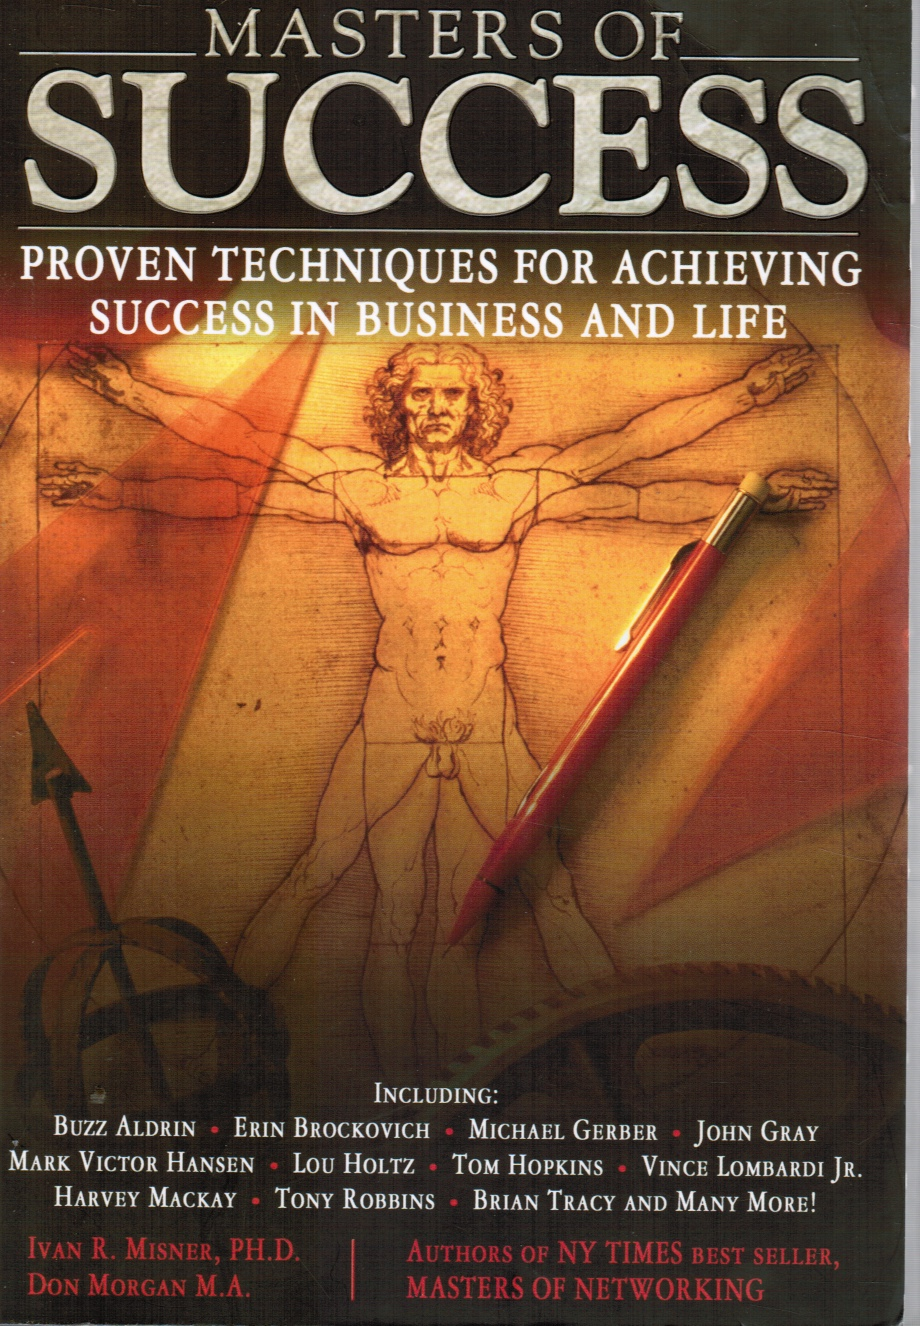 Image for Masters of Success: Proven Techniques for Achieving Success in Business and Life (SIGNED)